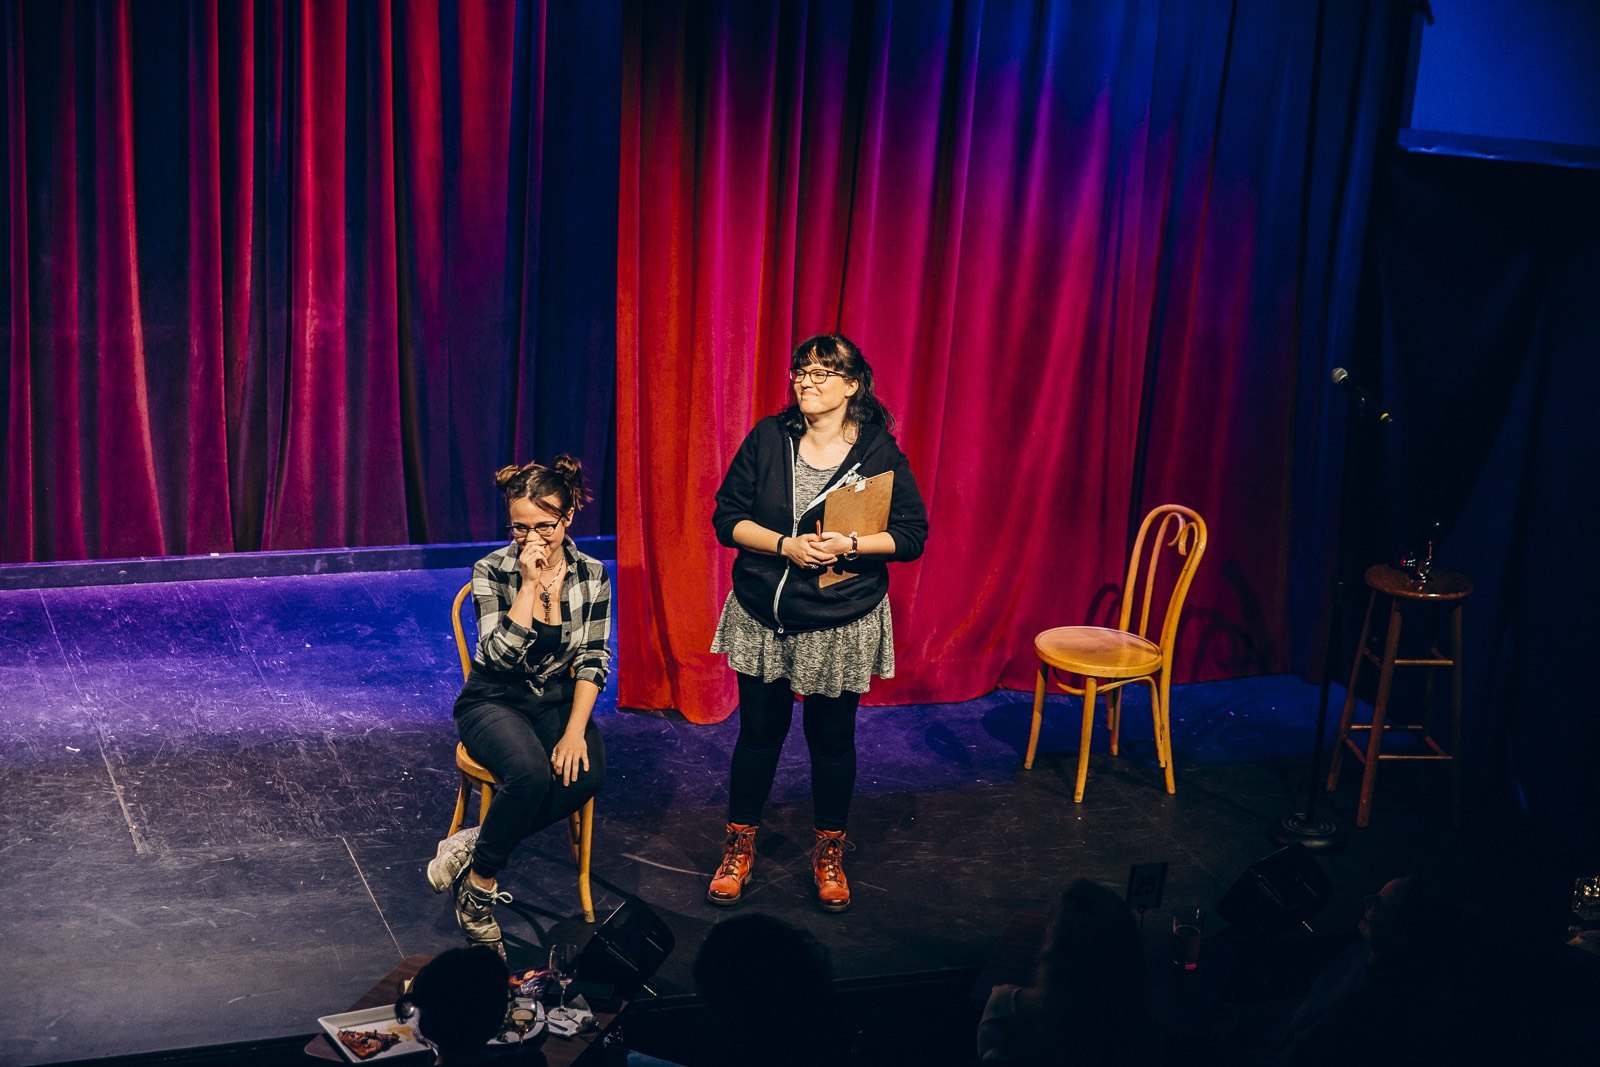 Two female comedians on stage